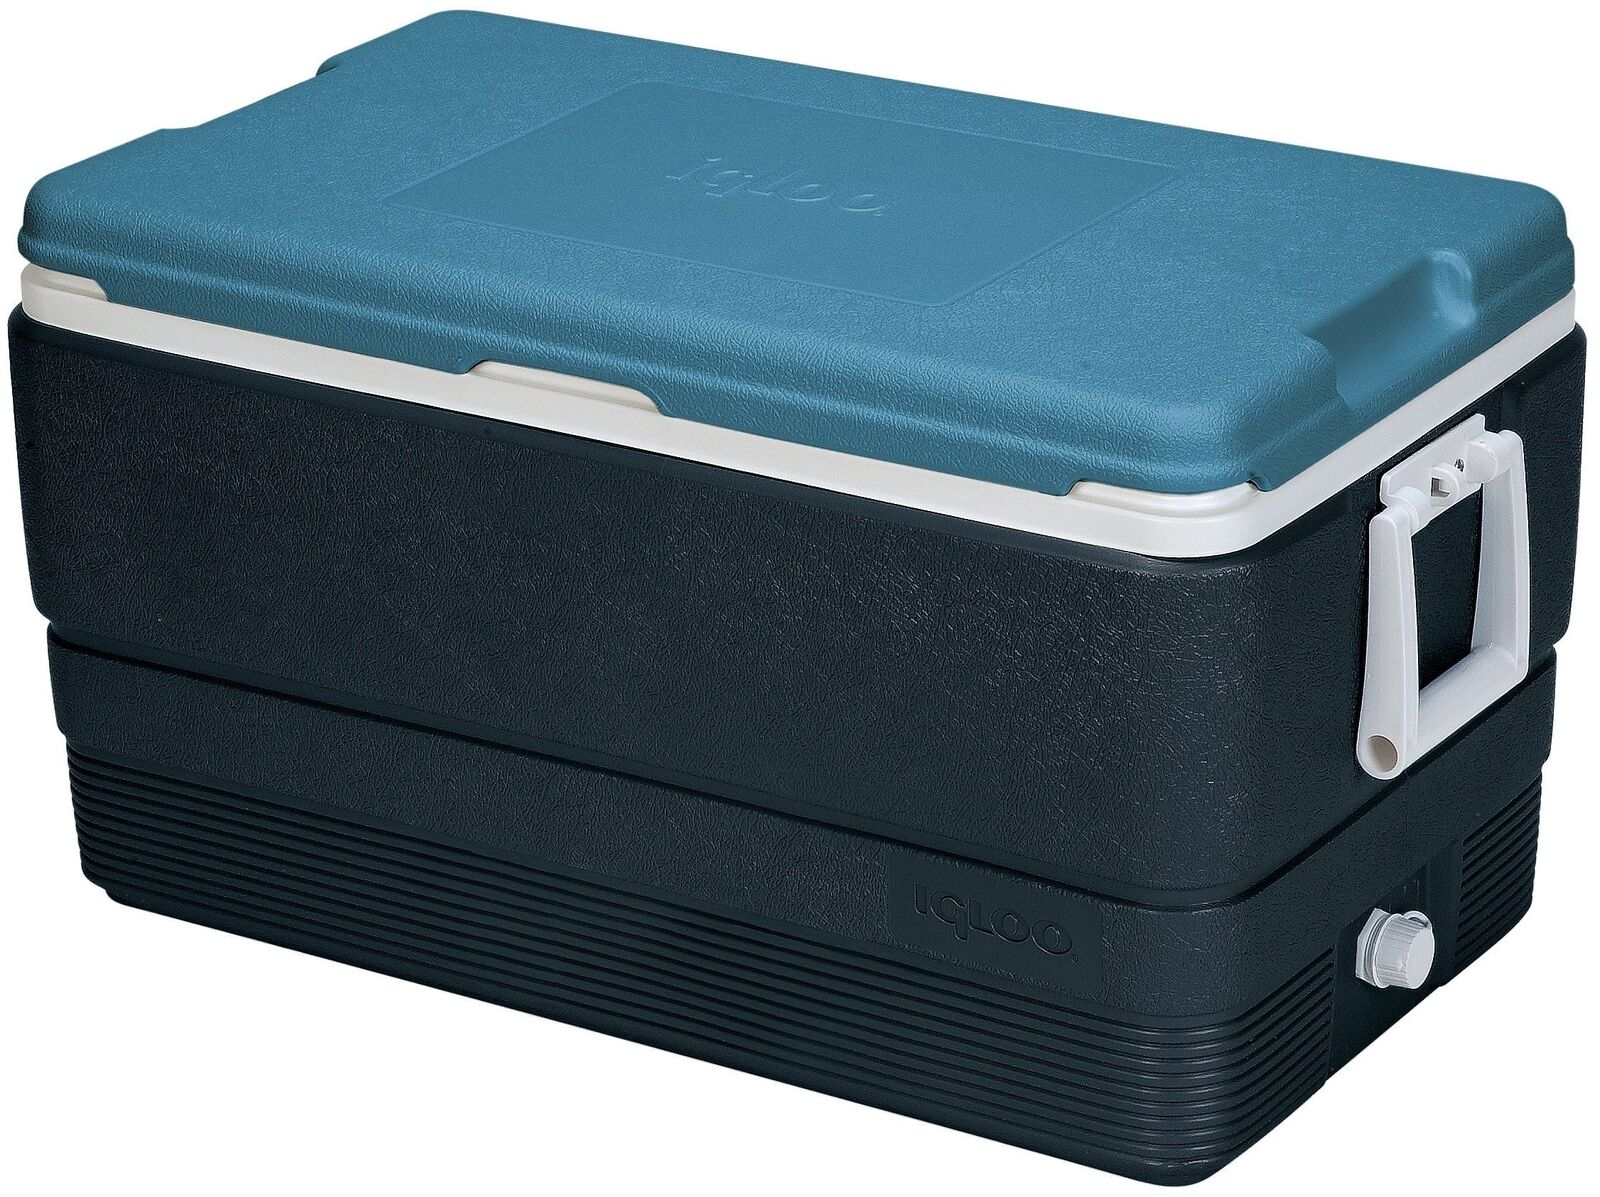 Igloo Maxcold Cooler Jet Carbon Bluee White 70 Quart Ice